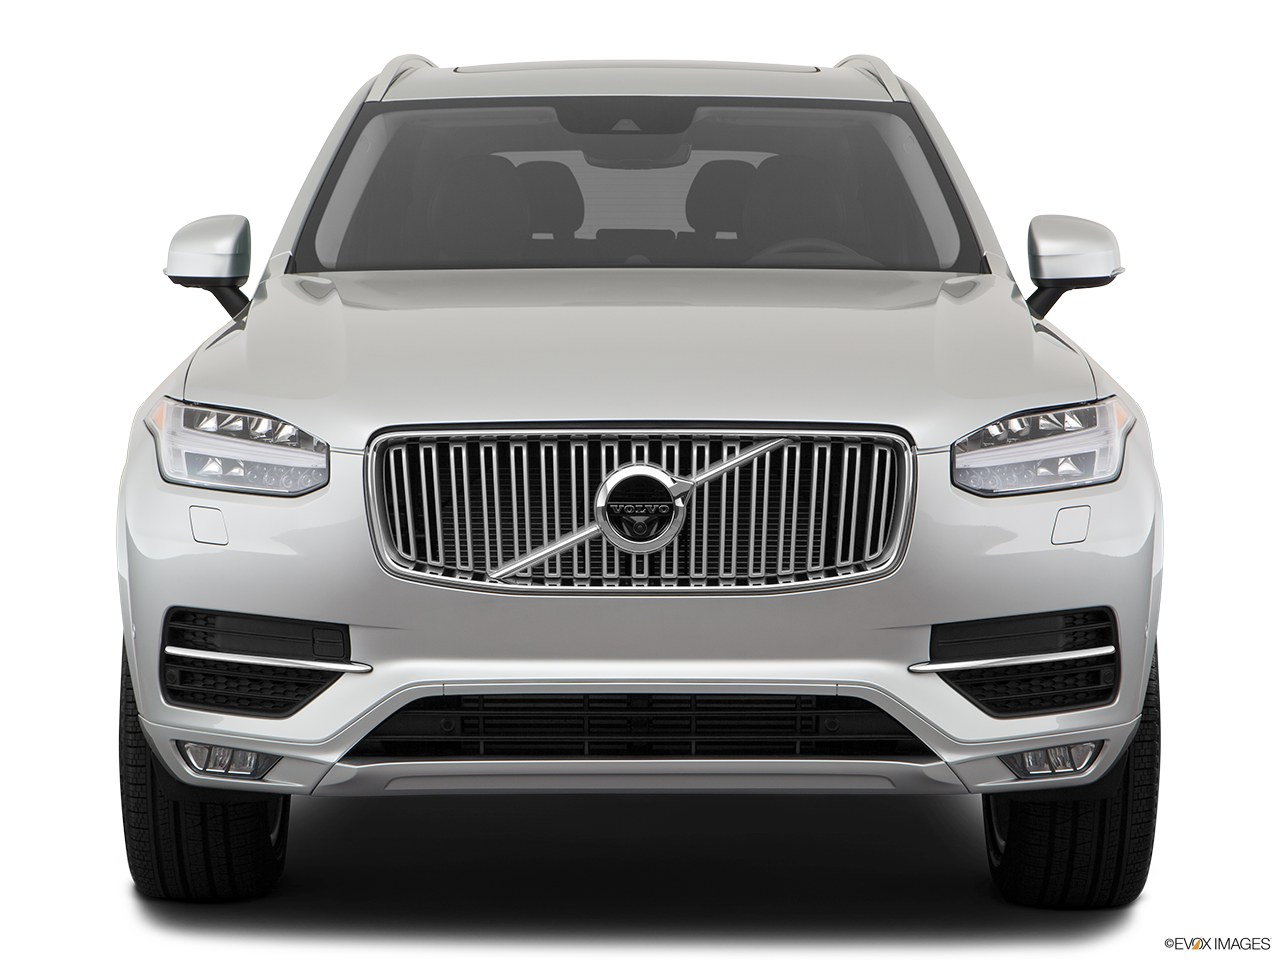 Front view of the Volvo XC90 PHEV